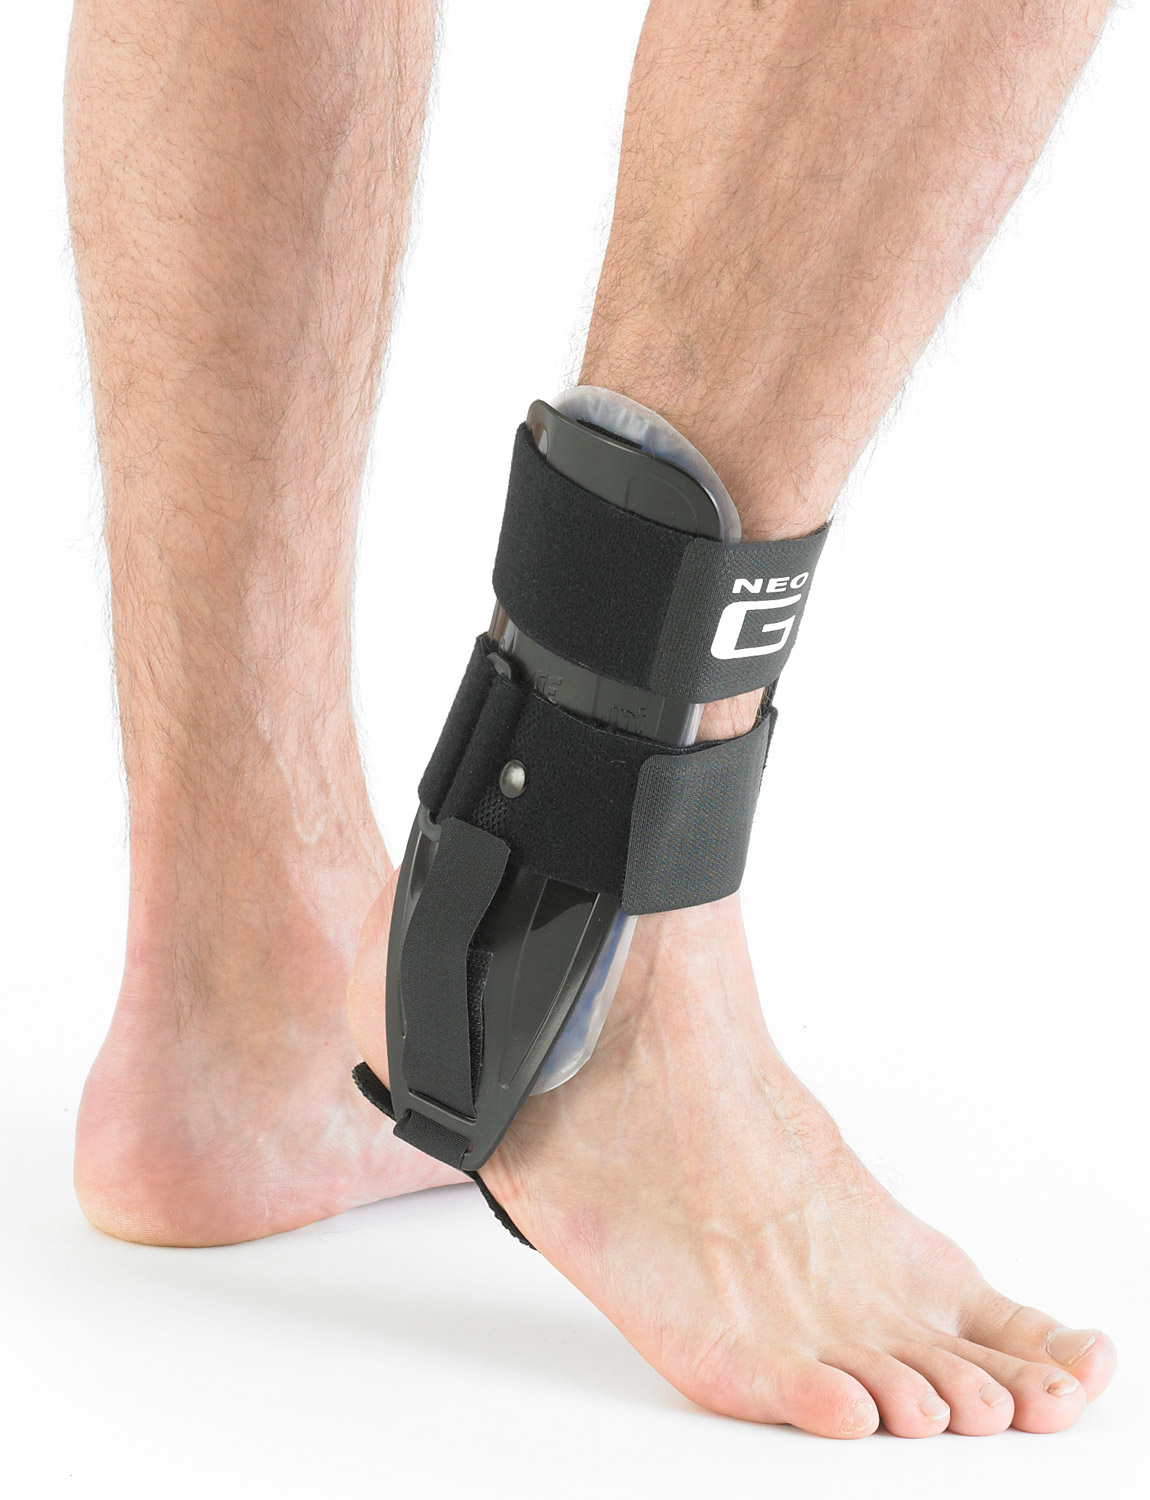 816 - ANKLE BRACE WITH GEL PAD  The support can be used to help manage strains, sprains, instability and weight bearing pressure on the joint whilst the compression helps with swelling and bruising following injury and trauma.